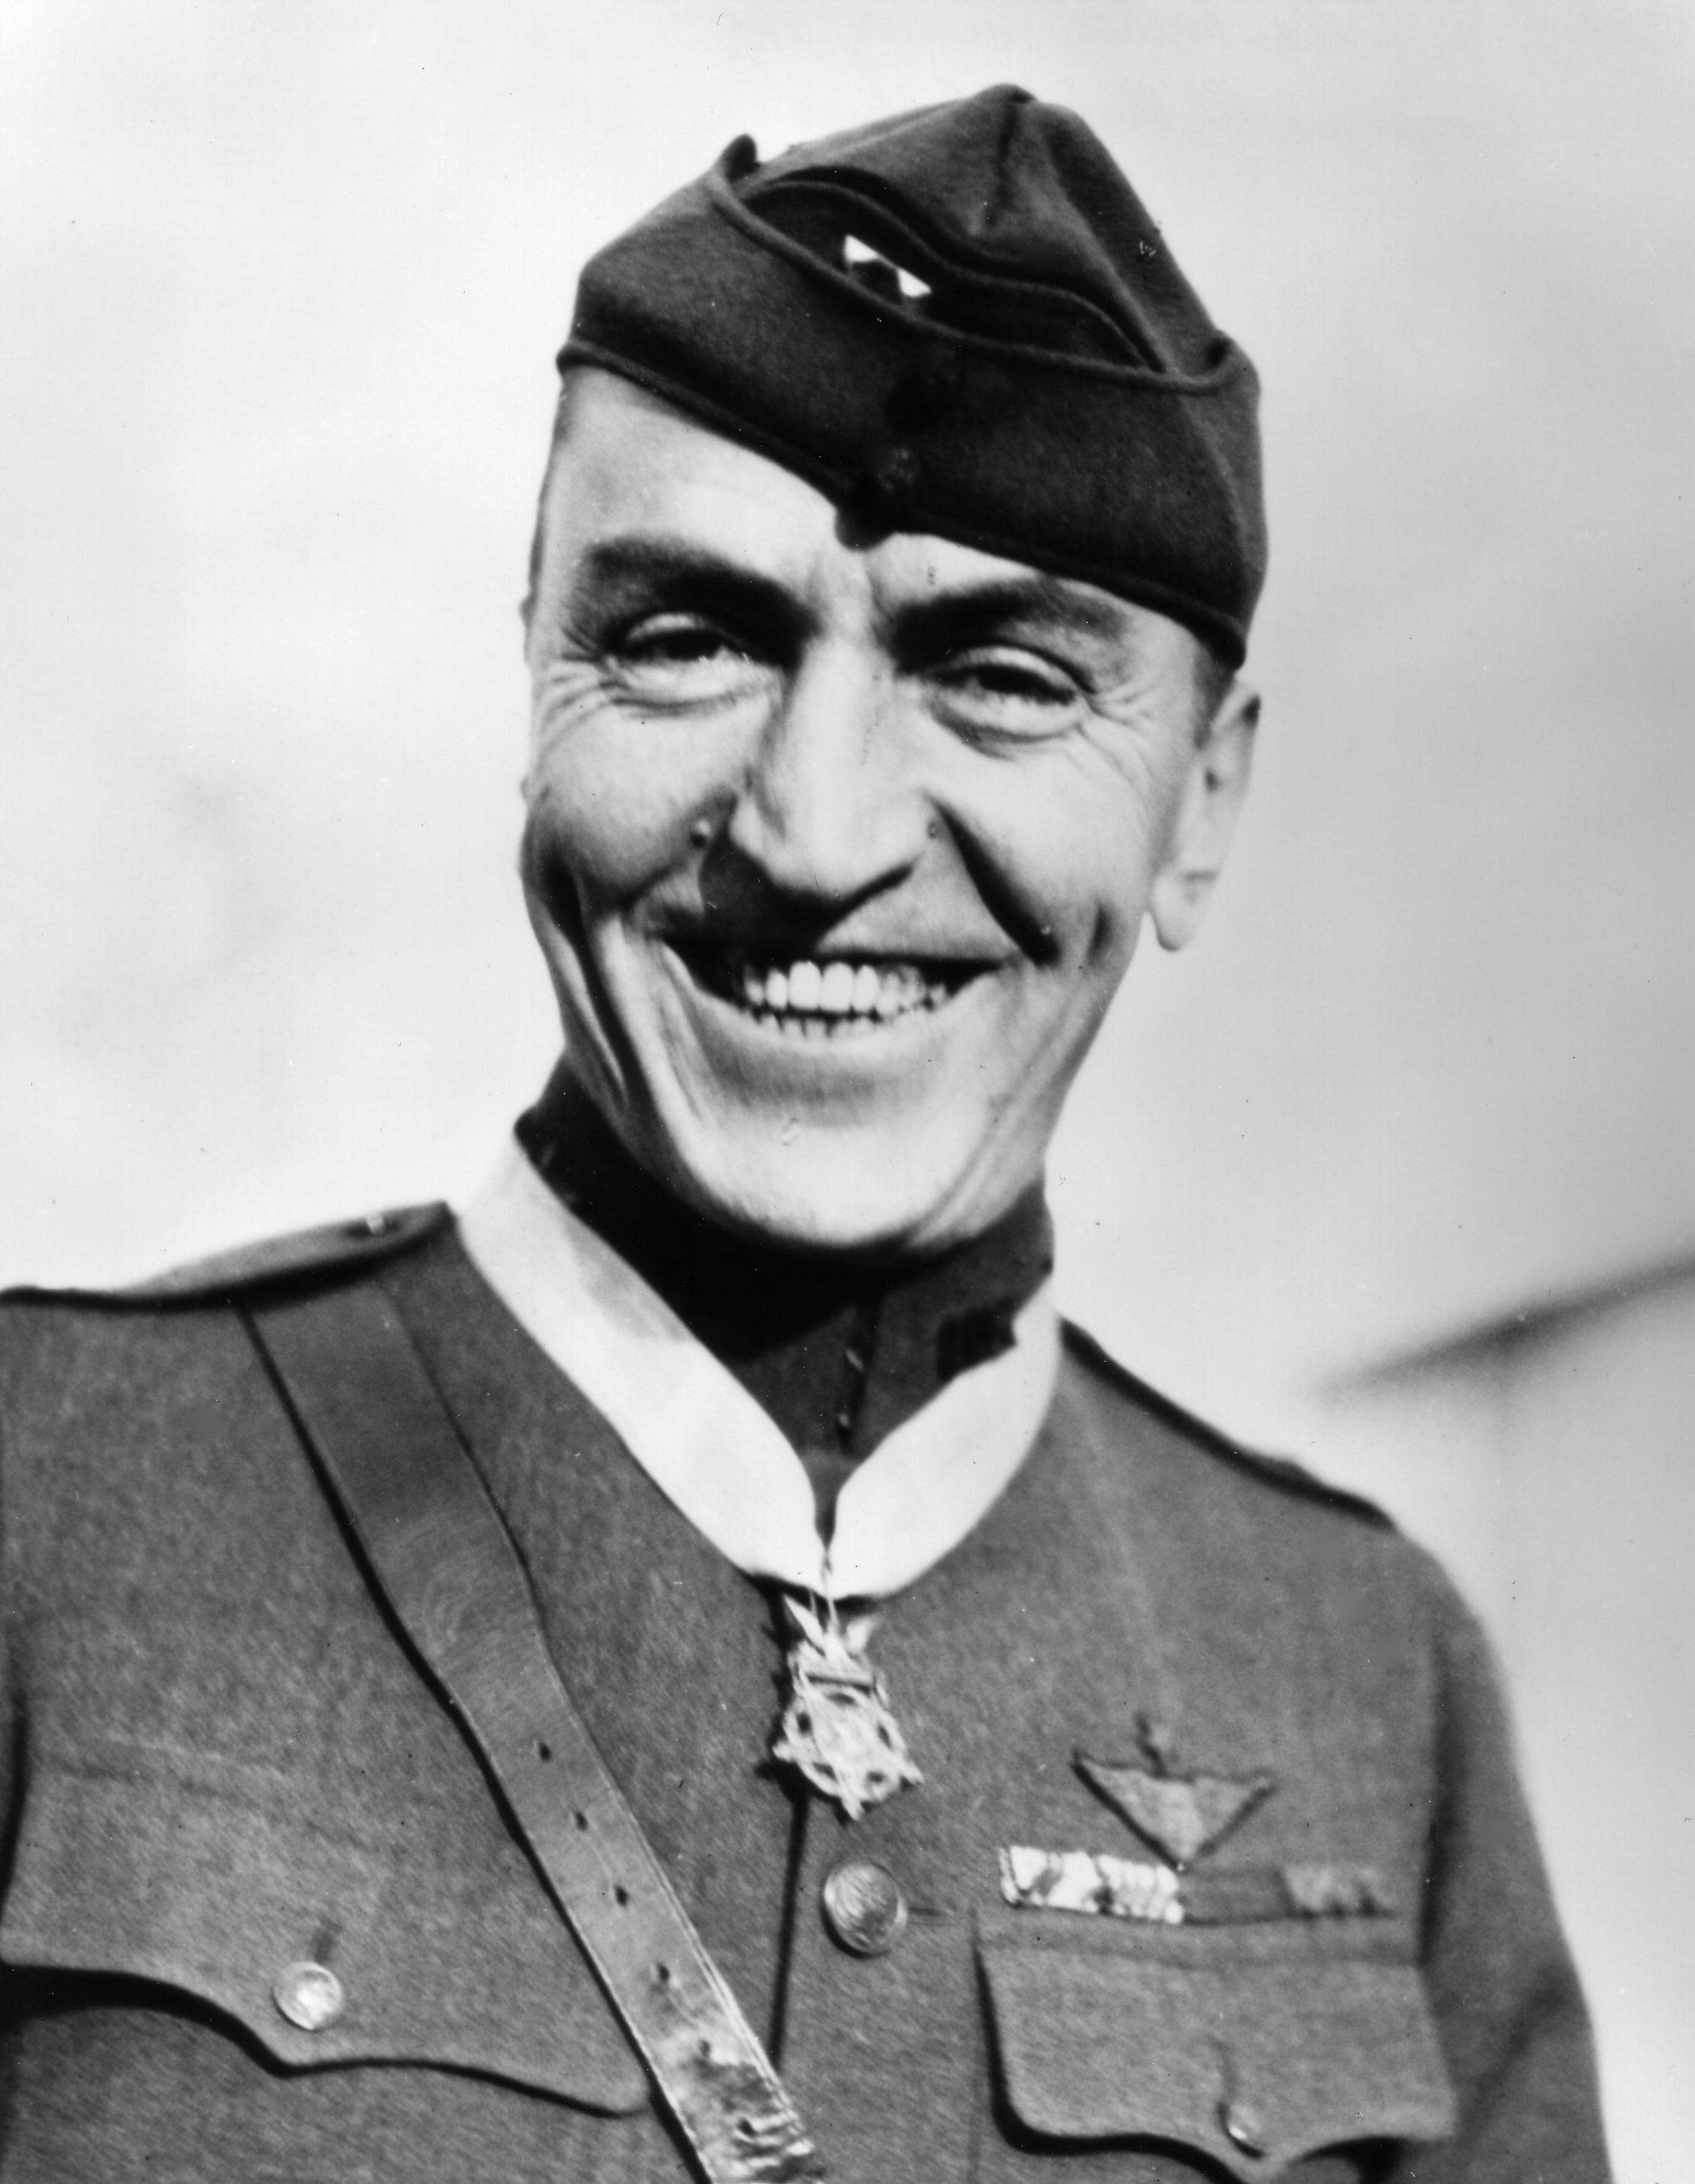 True American hero - Eddie Rickenbacker